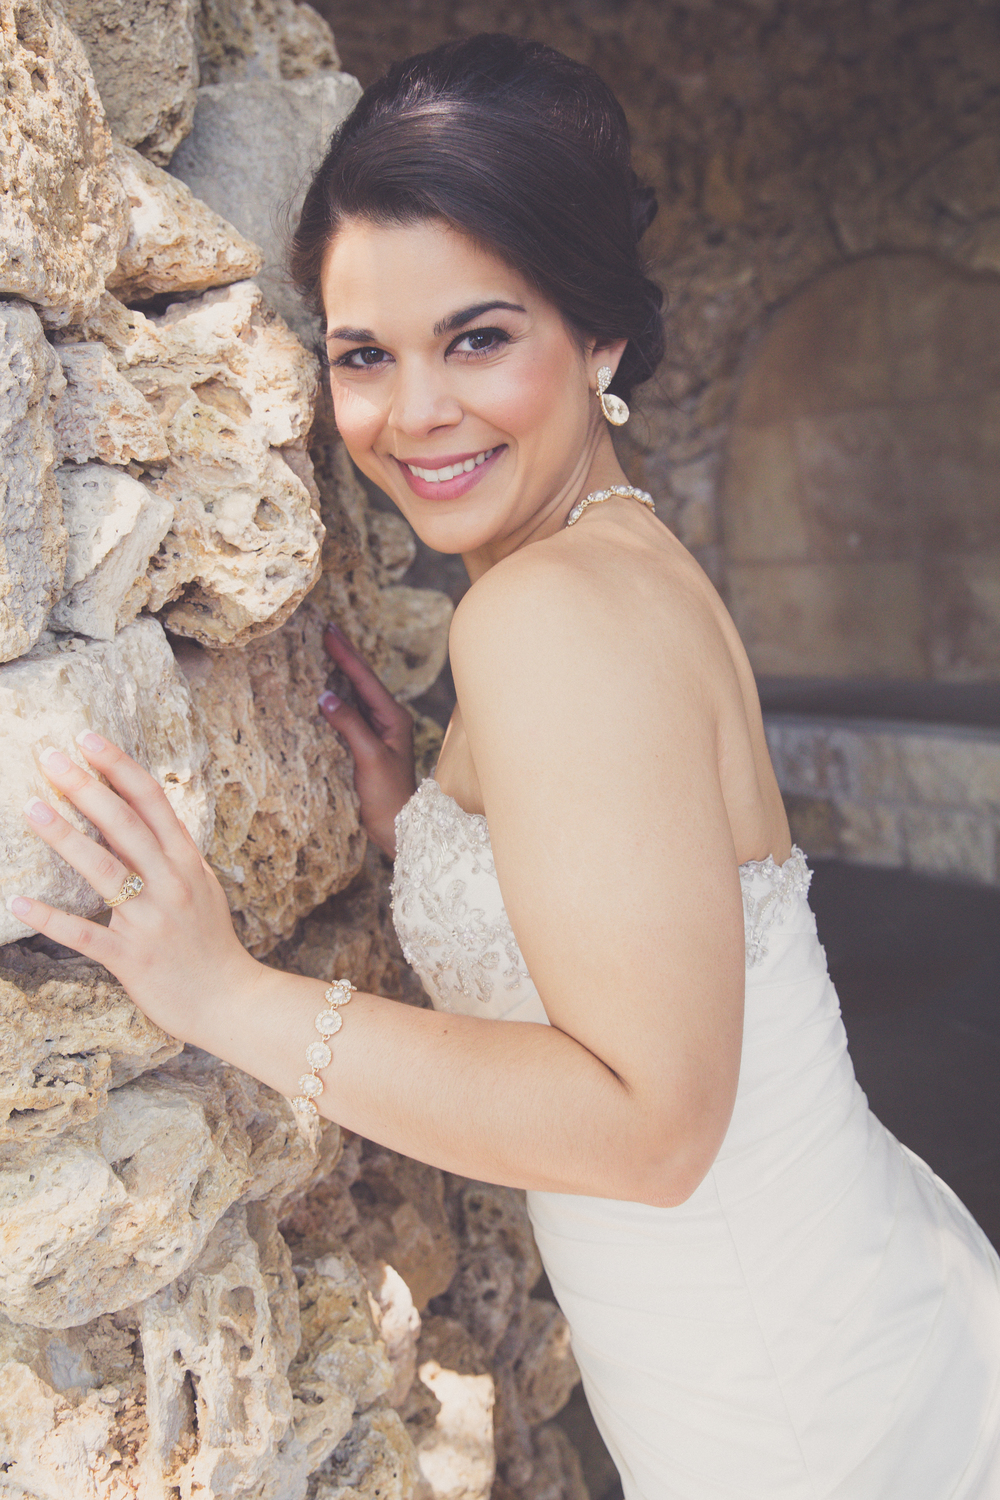 Bridal shoot at dallas arboretum